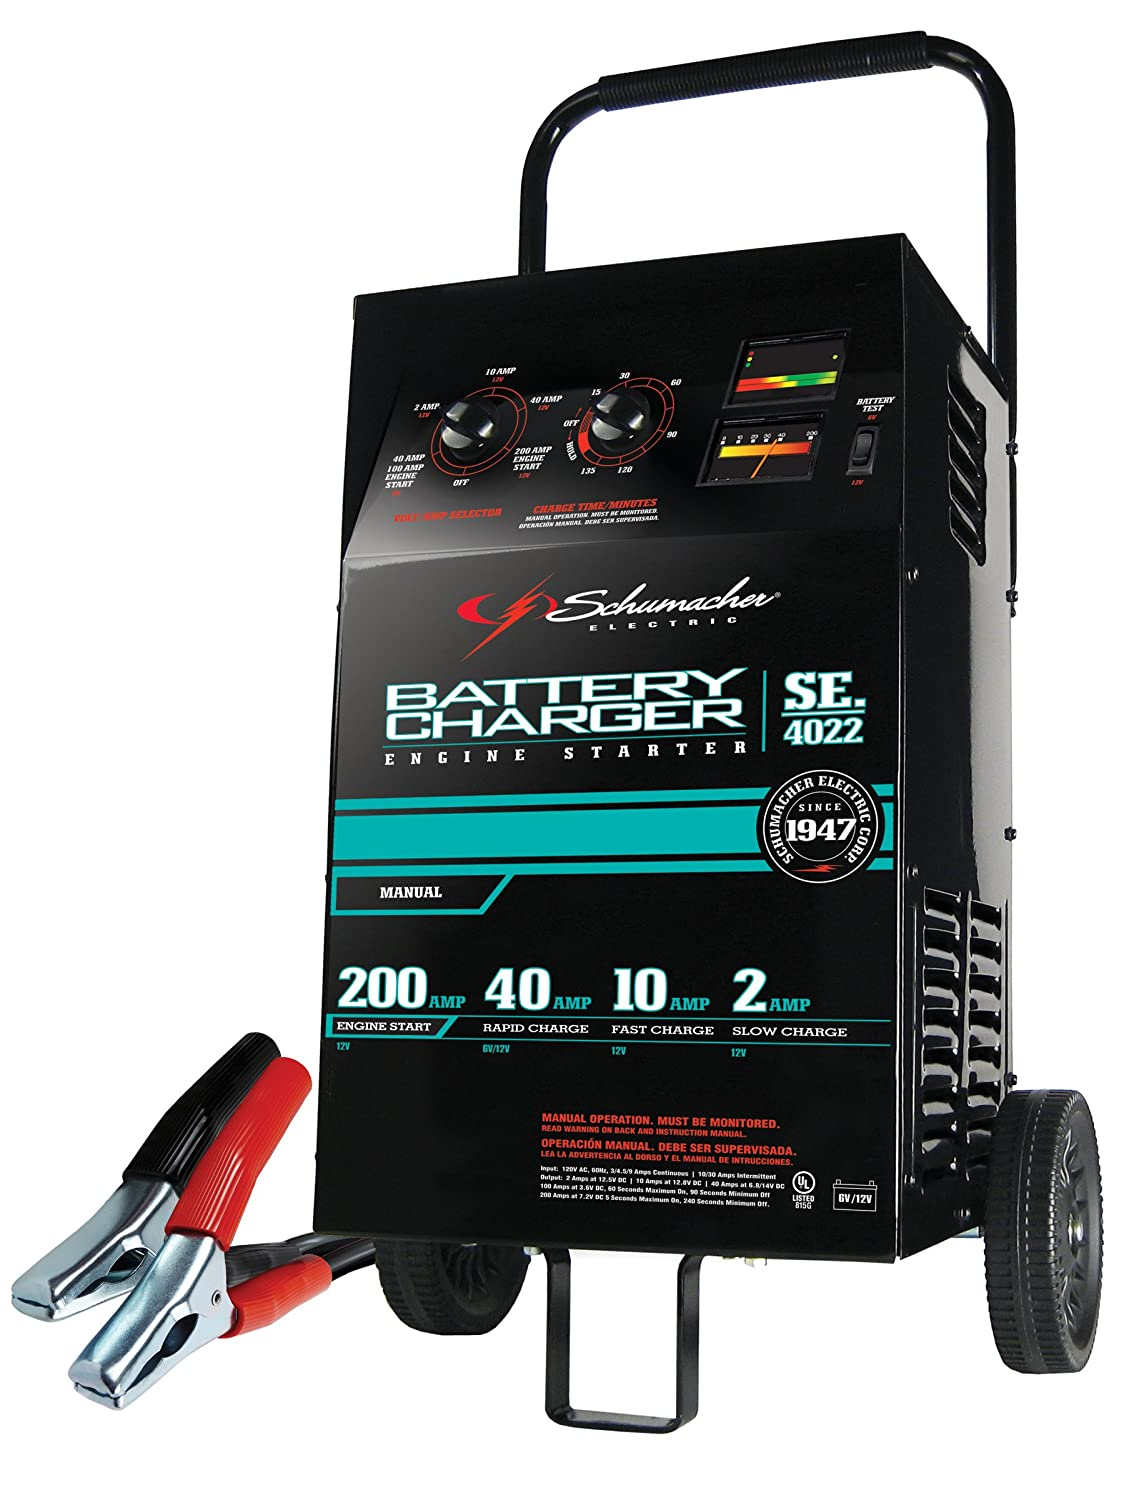 Schumacher SE-4022 Manual Wheeled Car Battery Charger Review